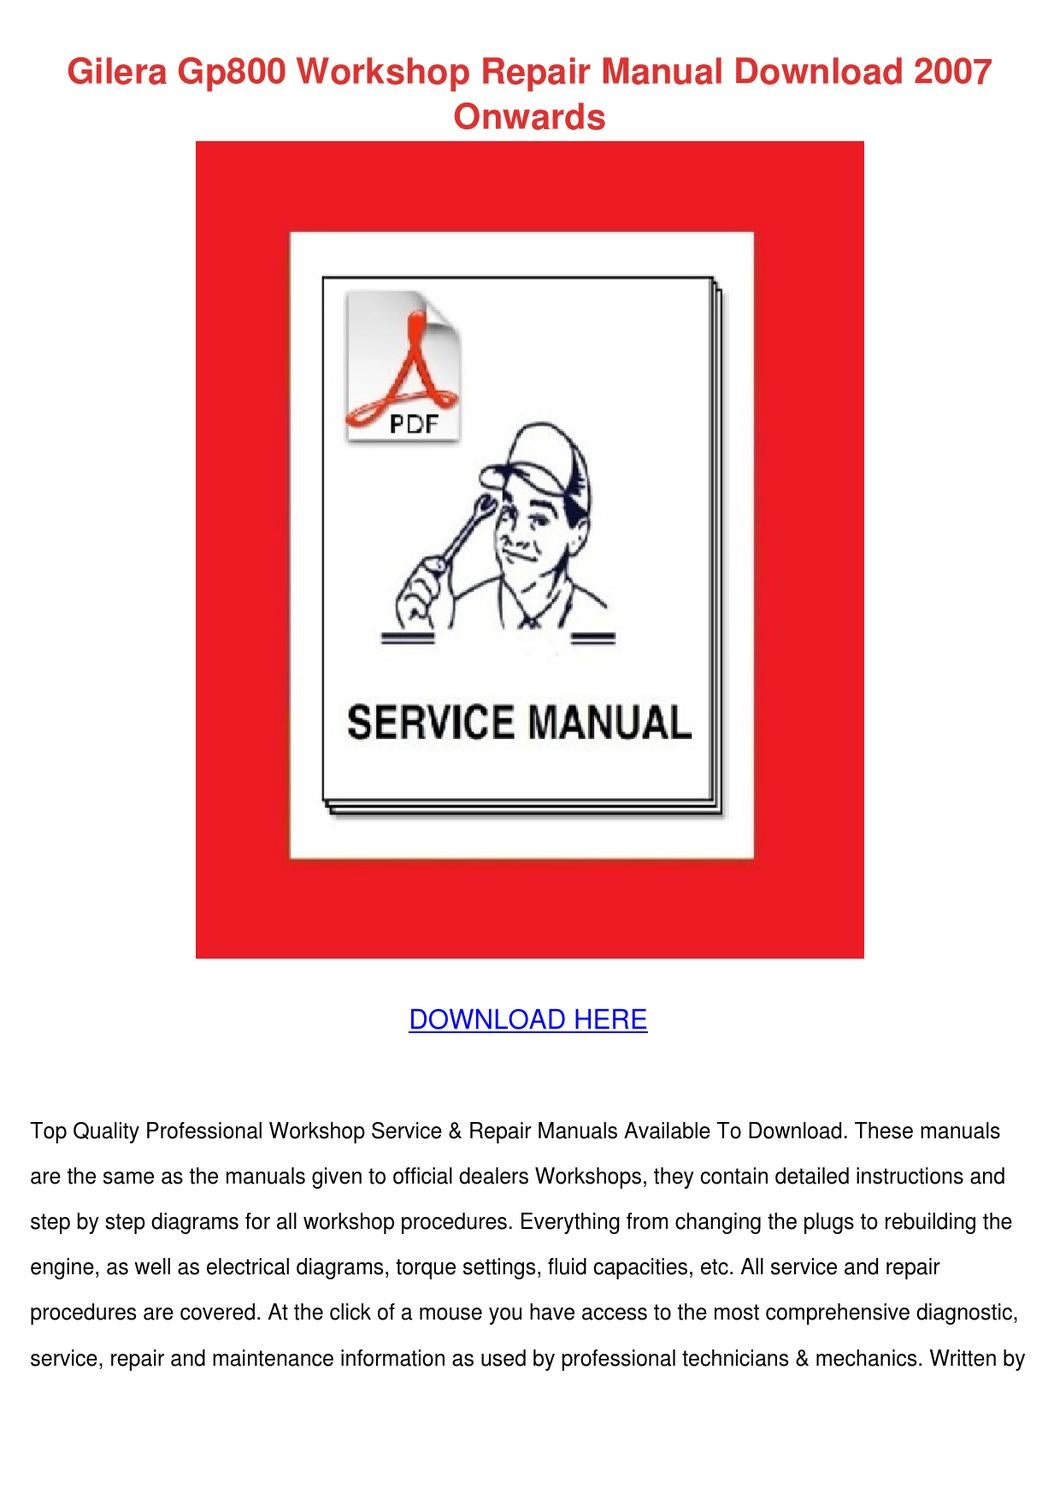 Gilera gp800 workshop repair manual download by lita salwasser issuu fandeluxe Gallery